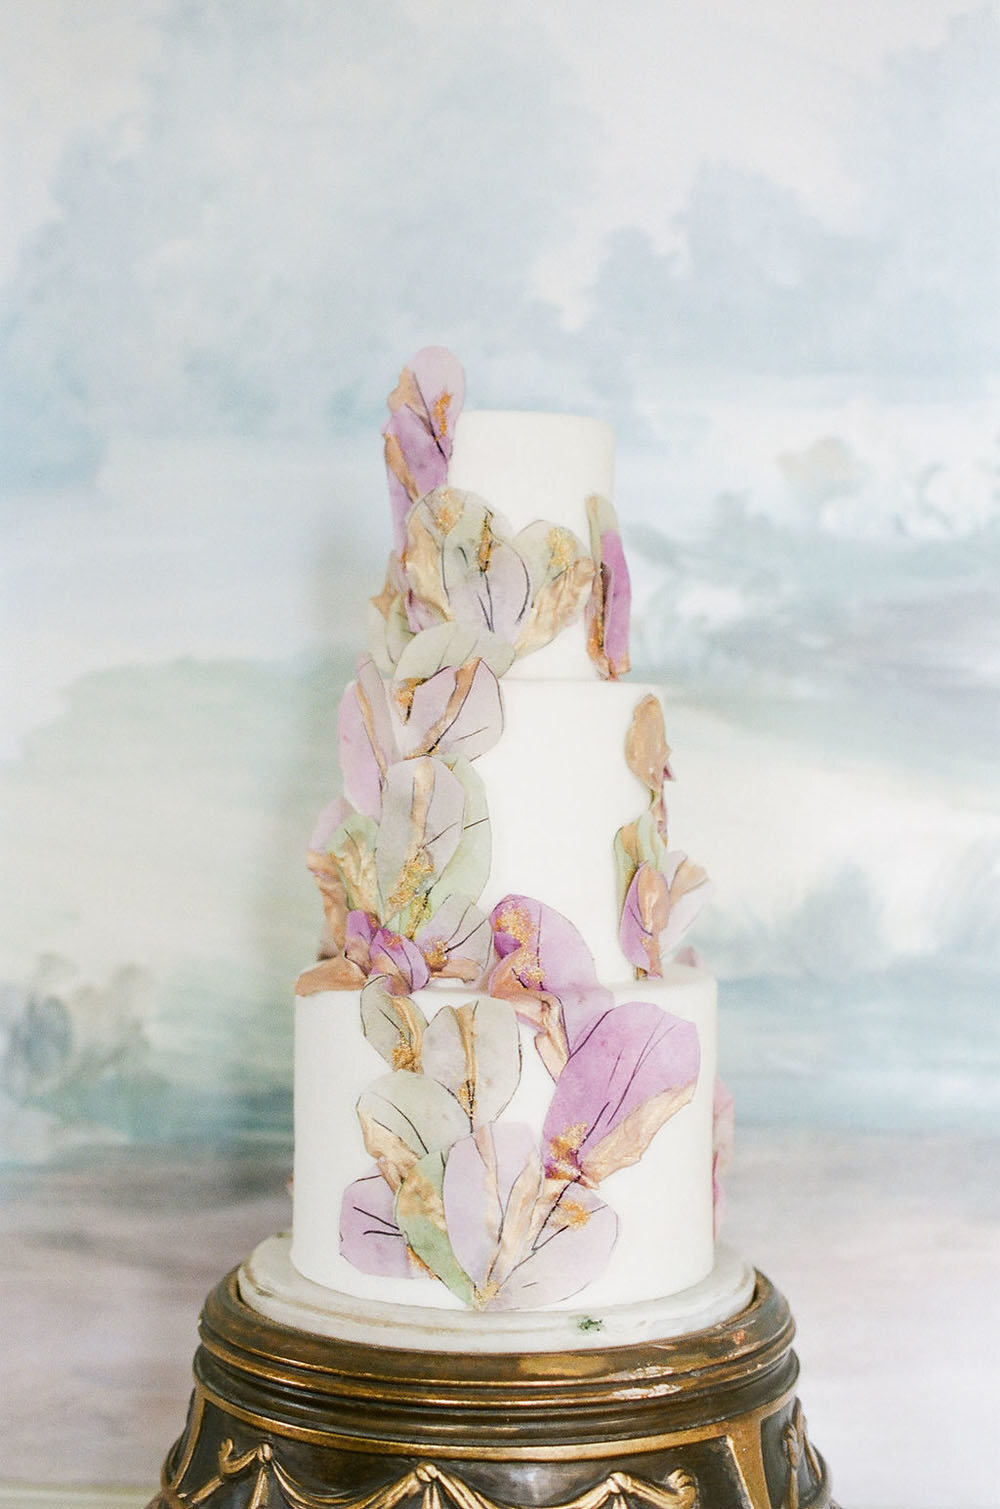 Fine art wedding cake with handpainted rice paper leaves in sage and lilac colors